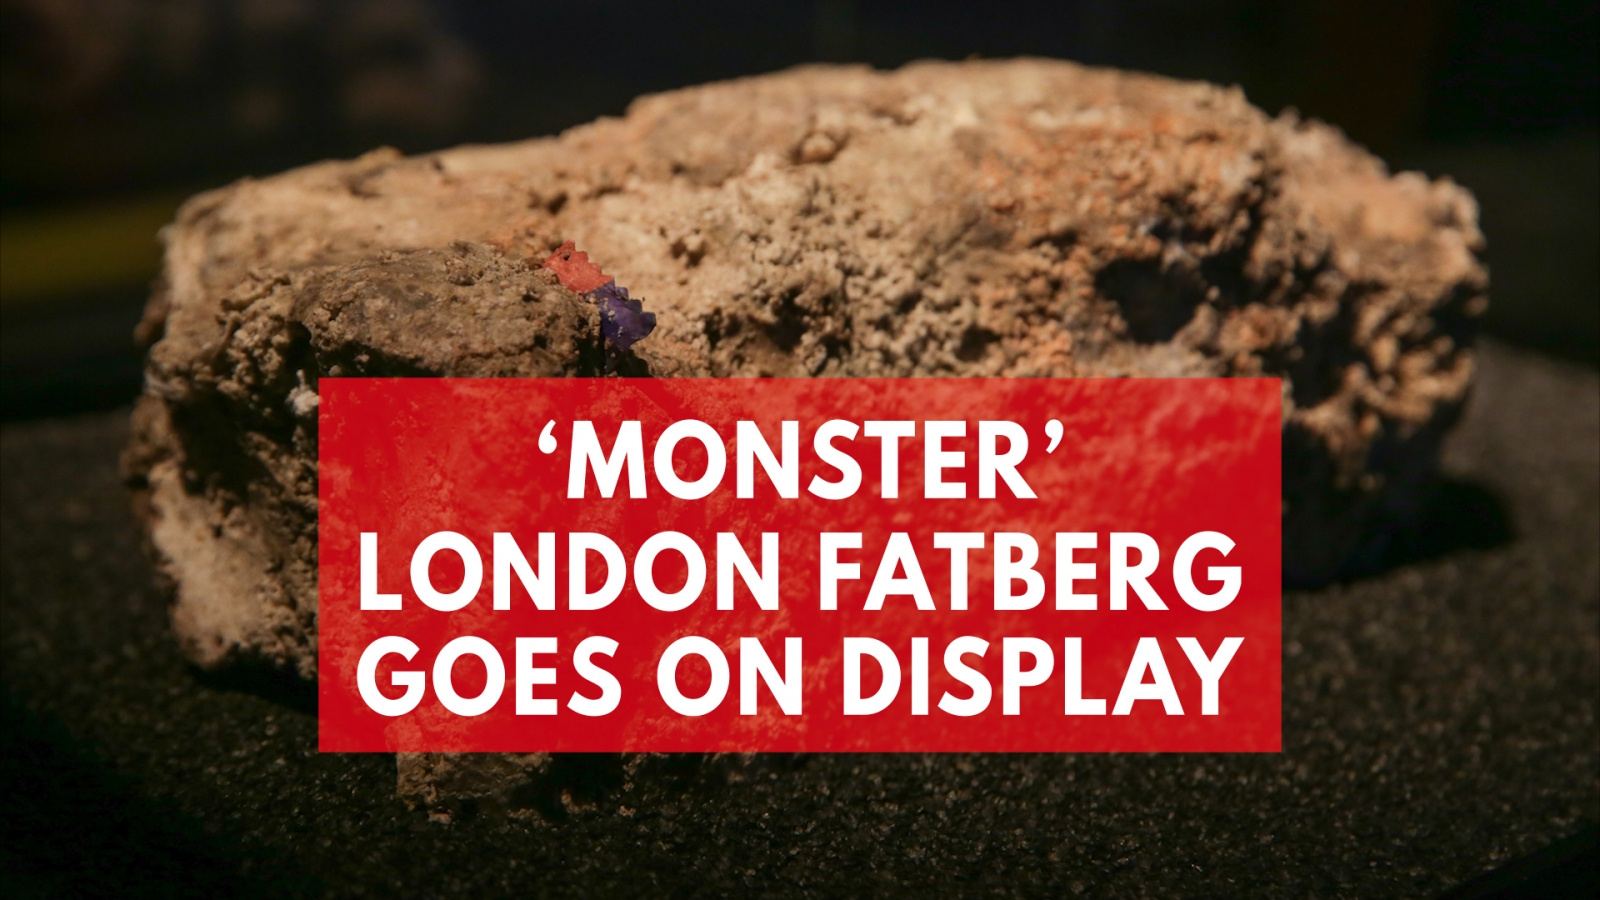 monster-fatberg-goes-on-display-in-london